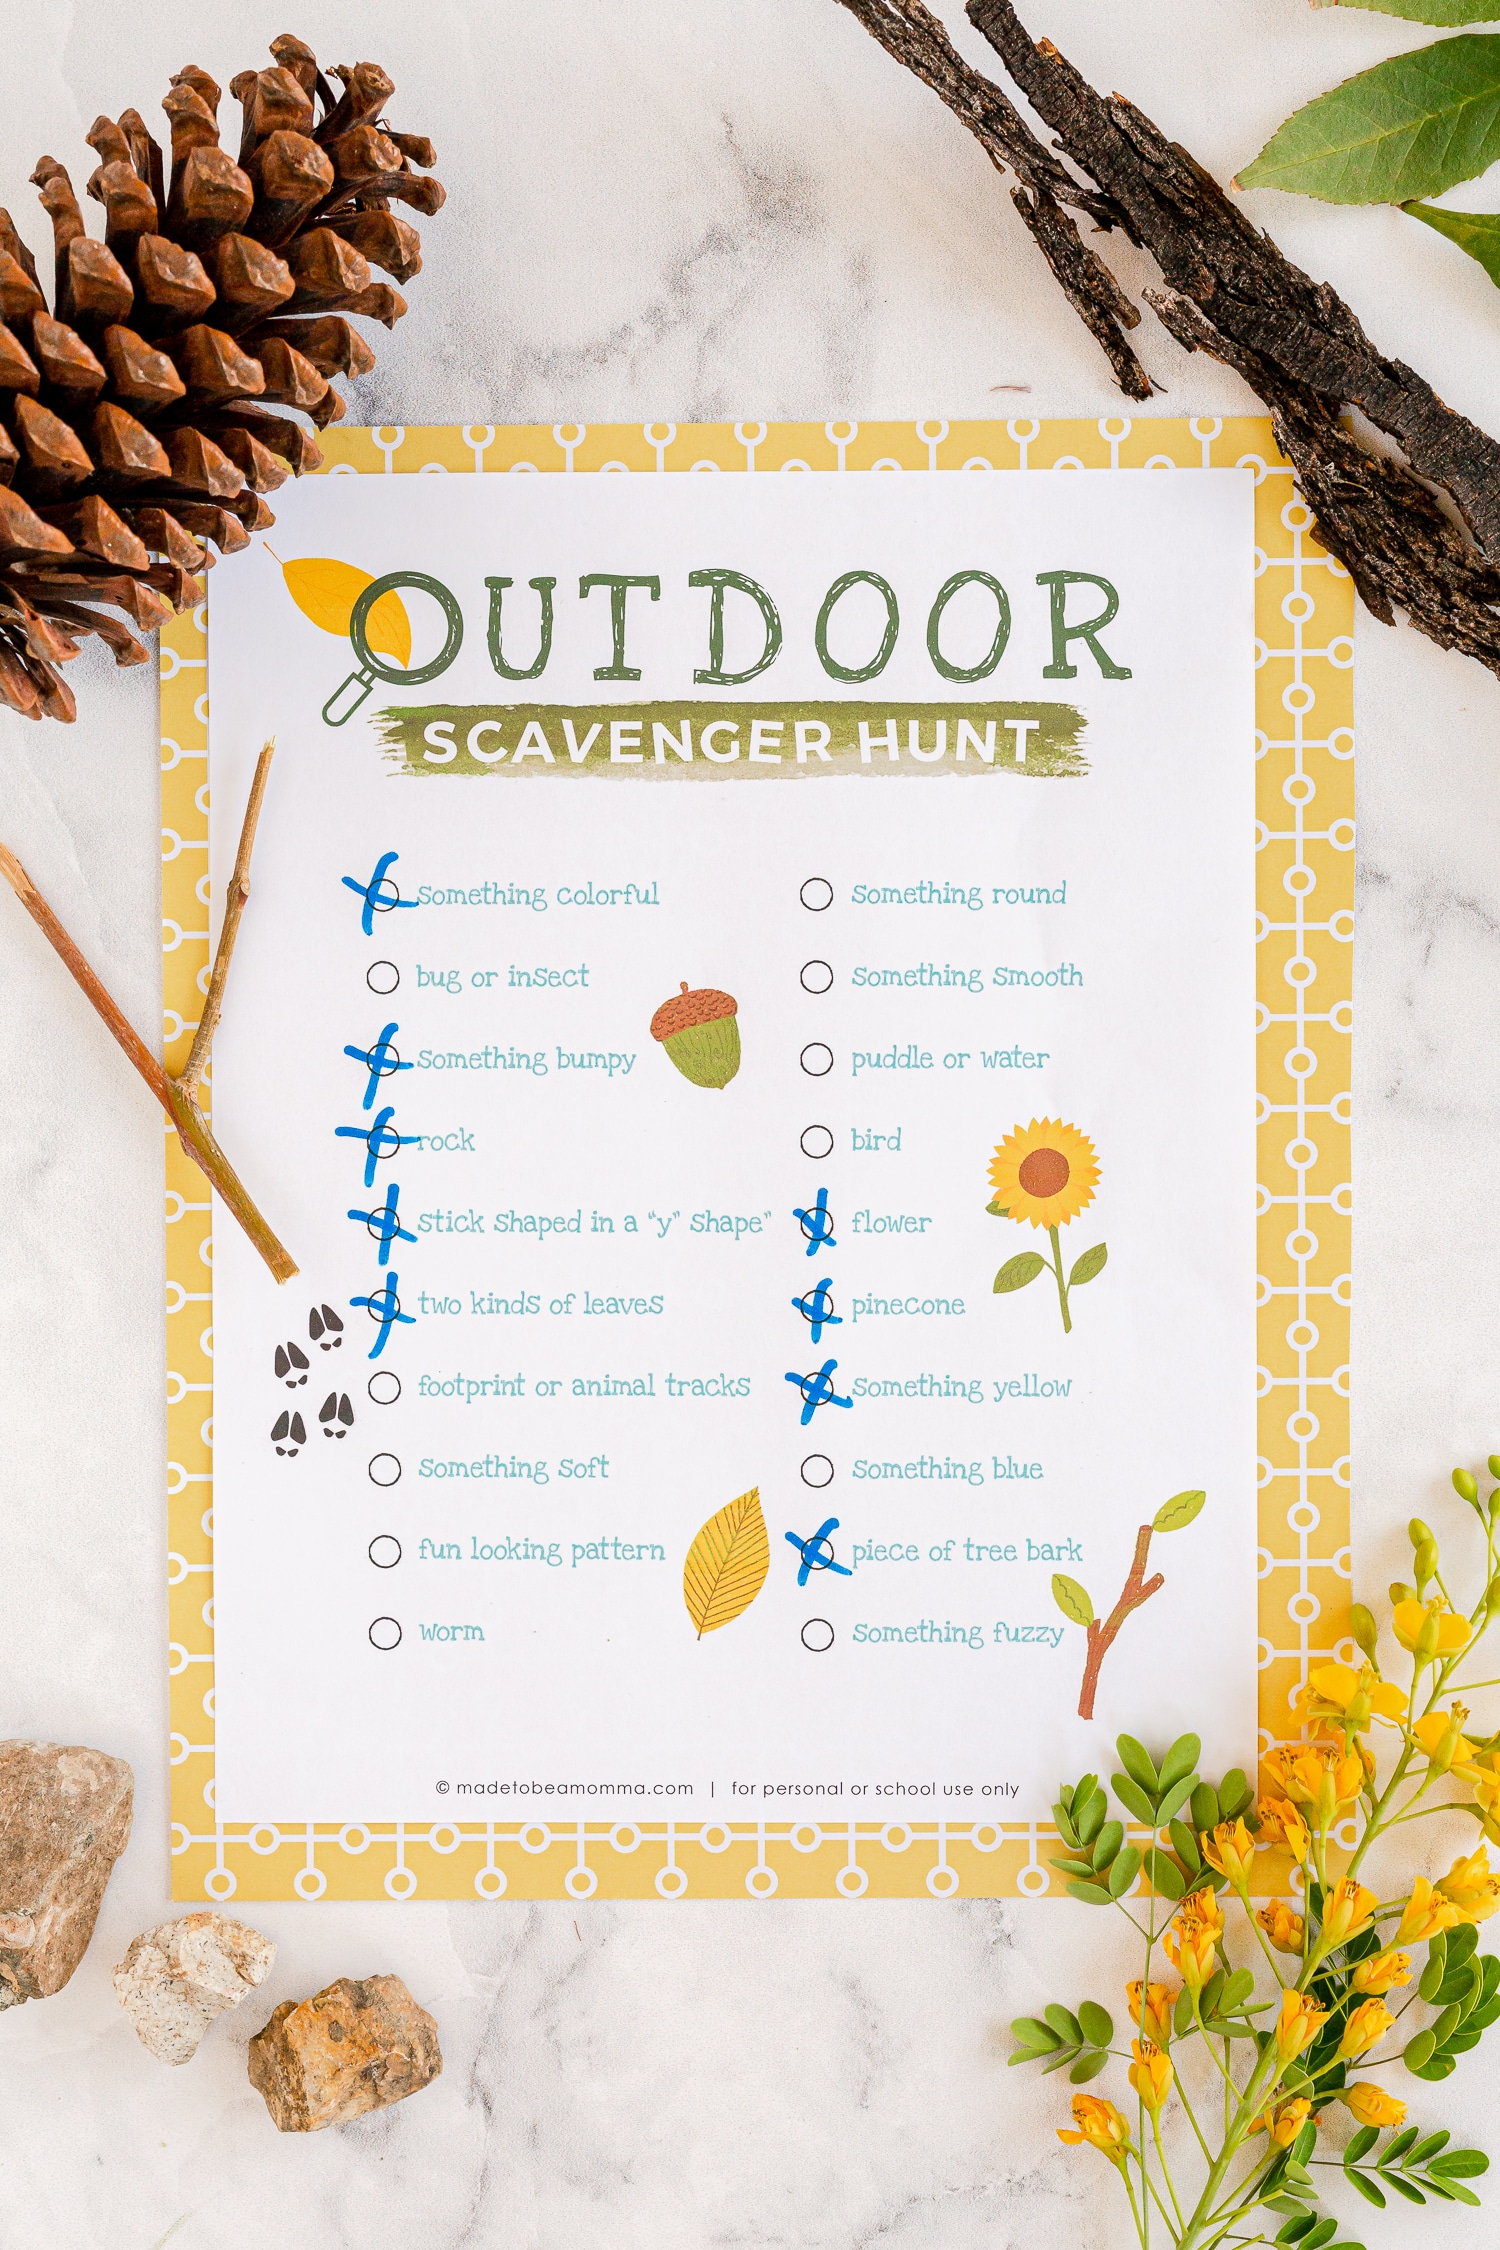 scavenger hunt printable with boxes marked off